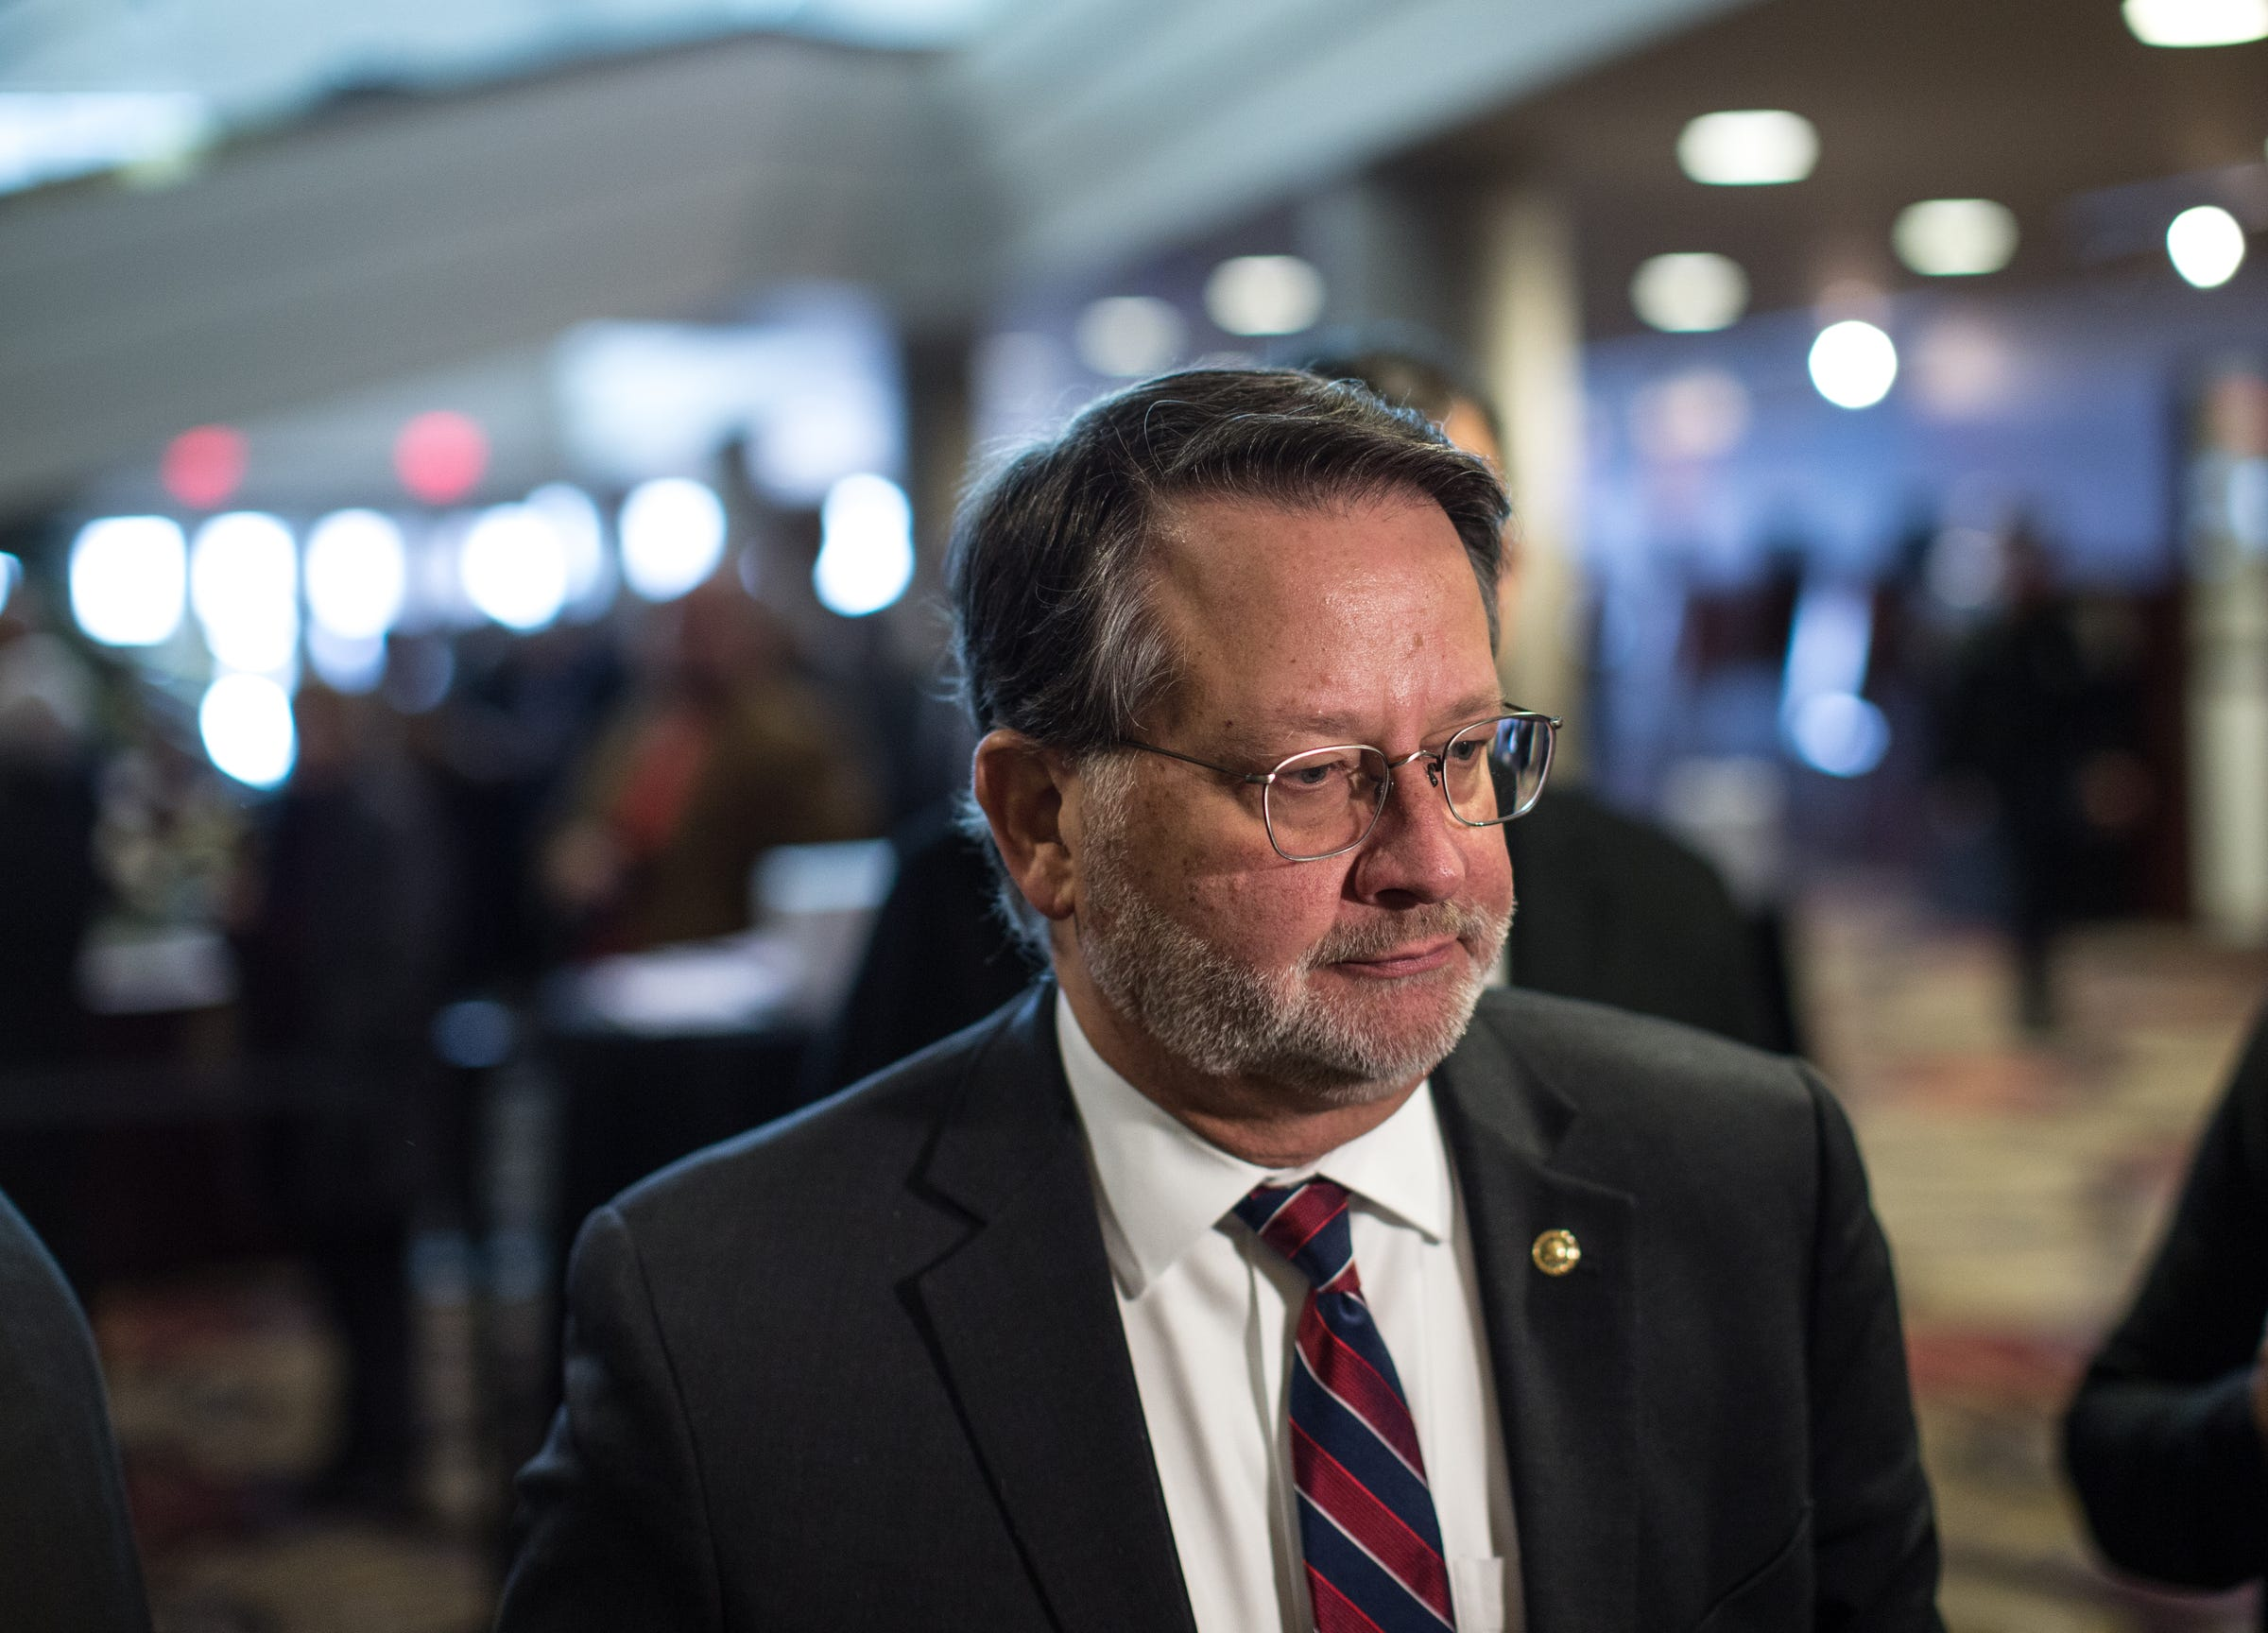 U.S. Senator Gary Peters talks with media during visitation of former US Representative John D. Dingell at the Ford Community and Performing Arts Center in Dearborn on Monday, February 11, 2019.